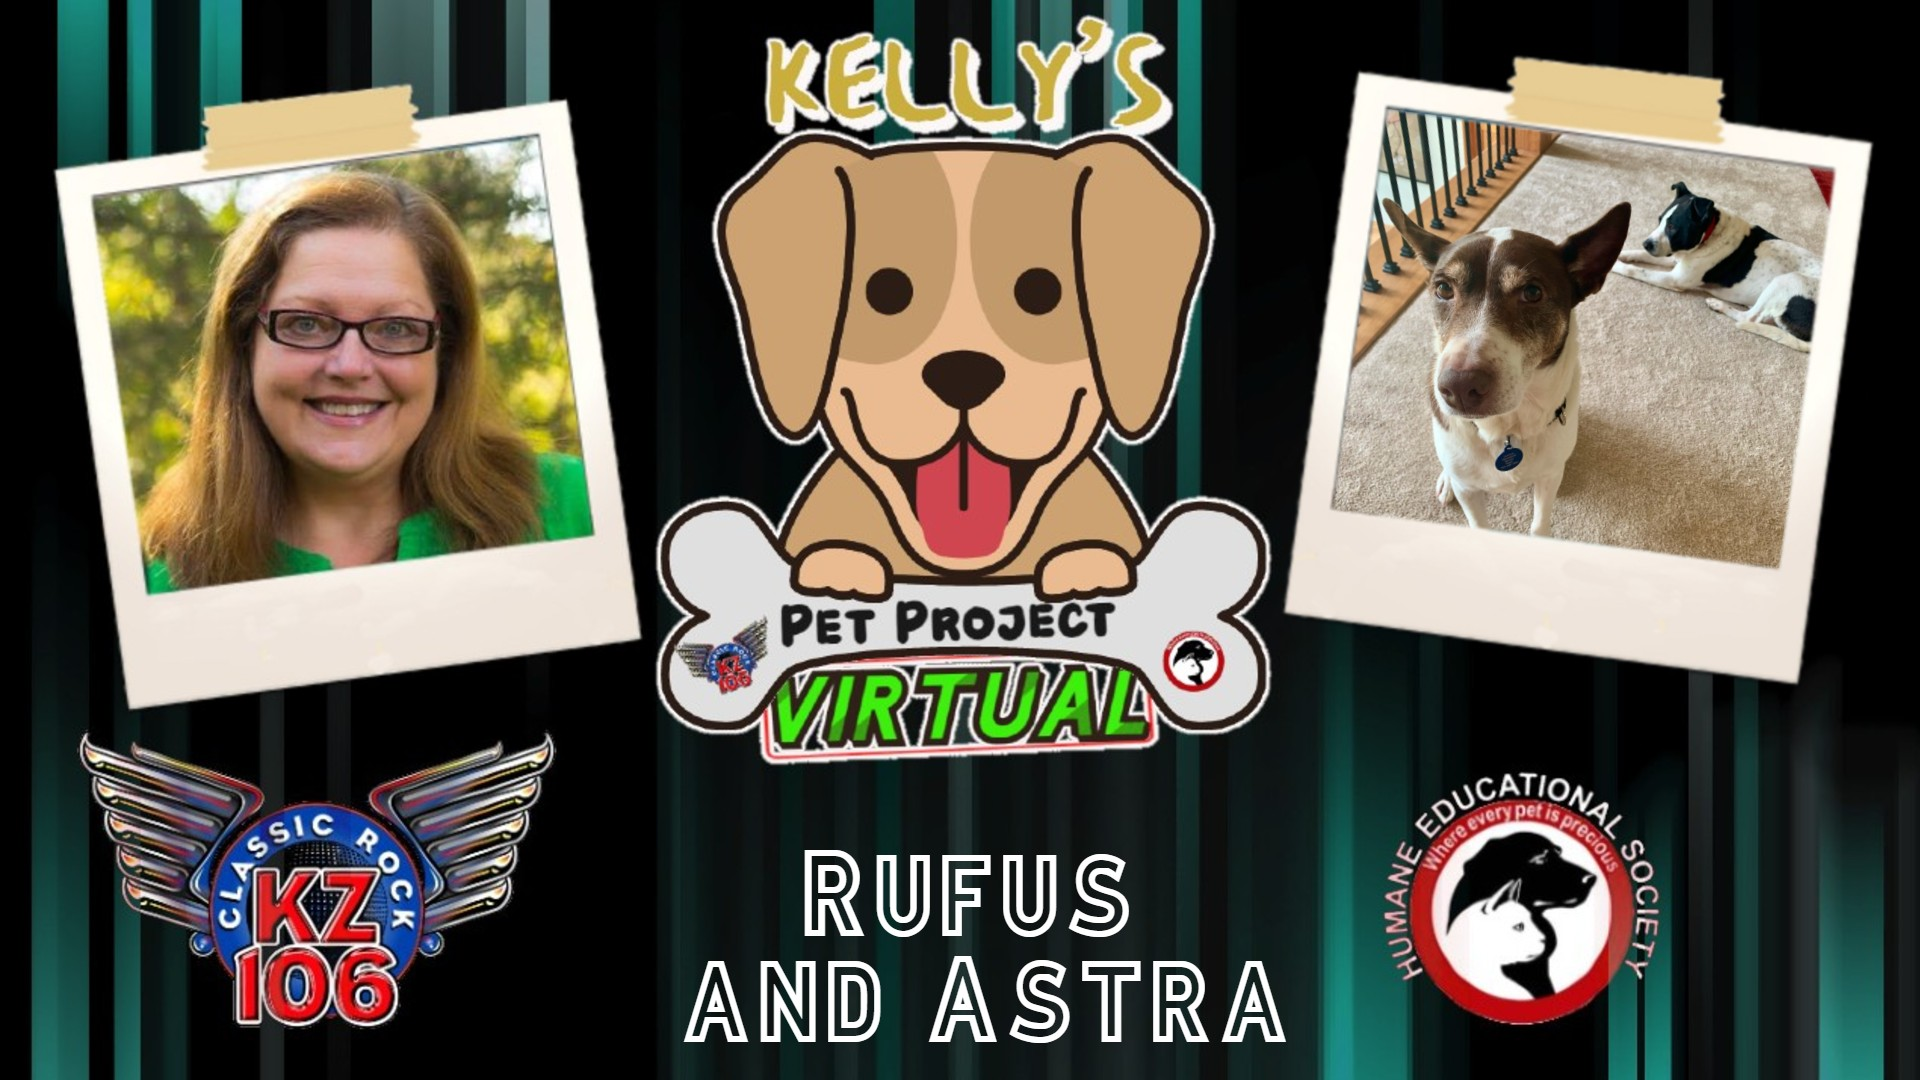 Kelly's Pet Project: Rufus and Astra